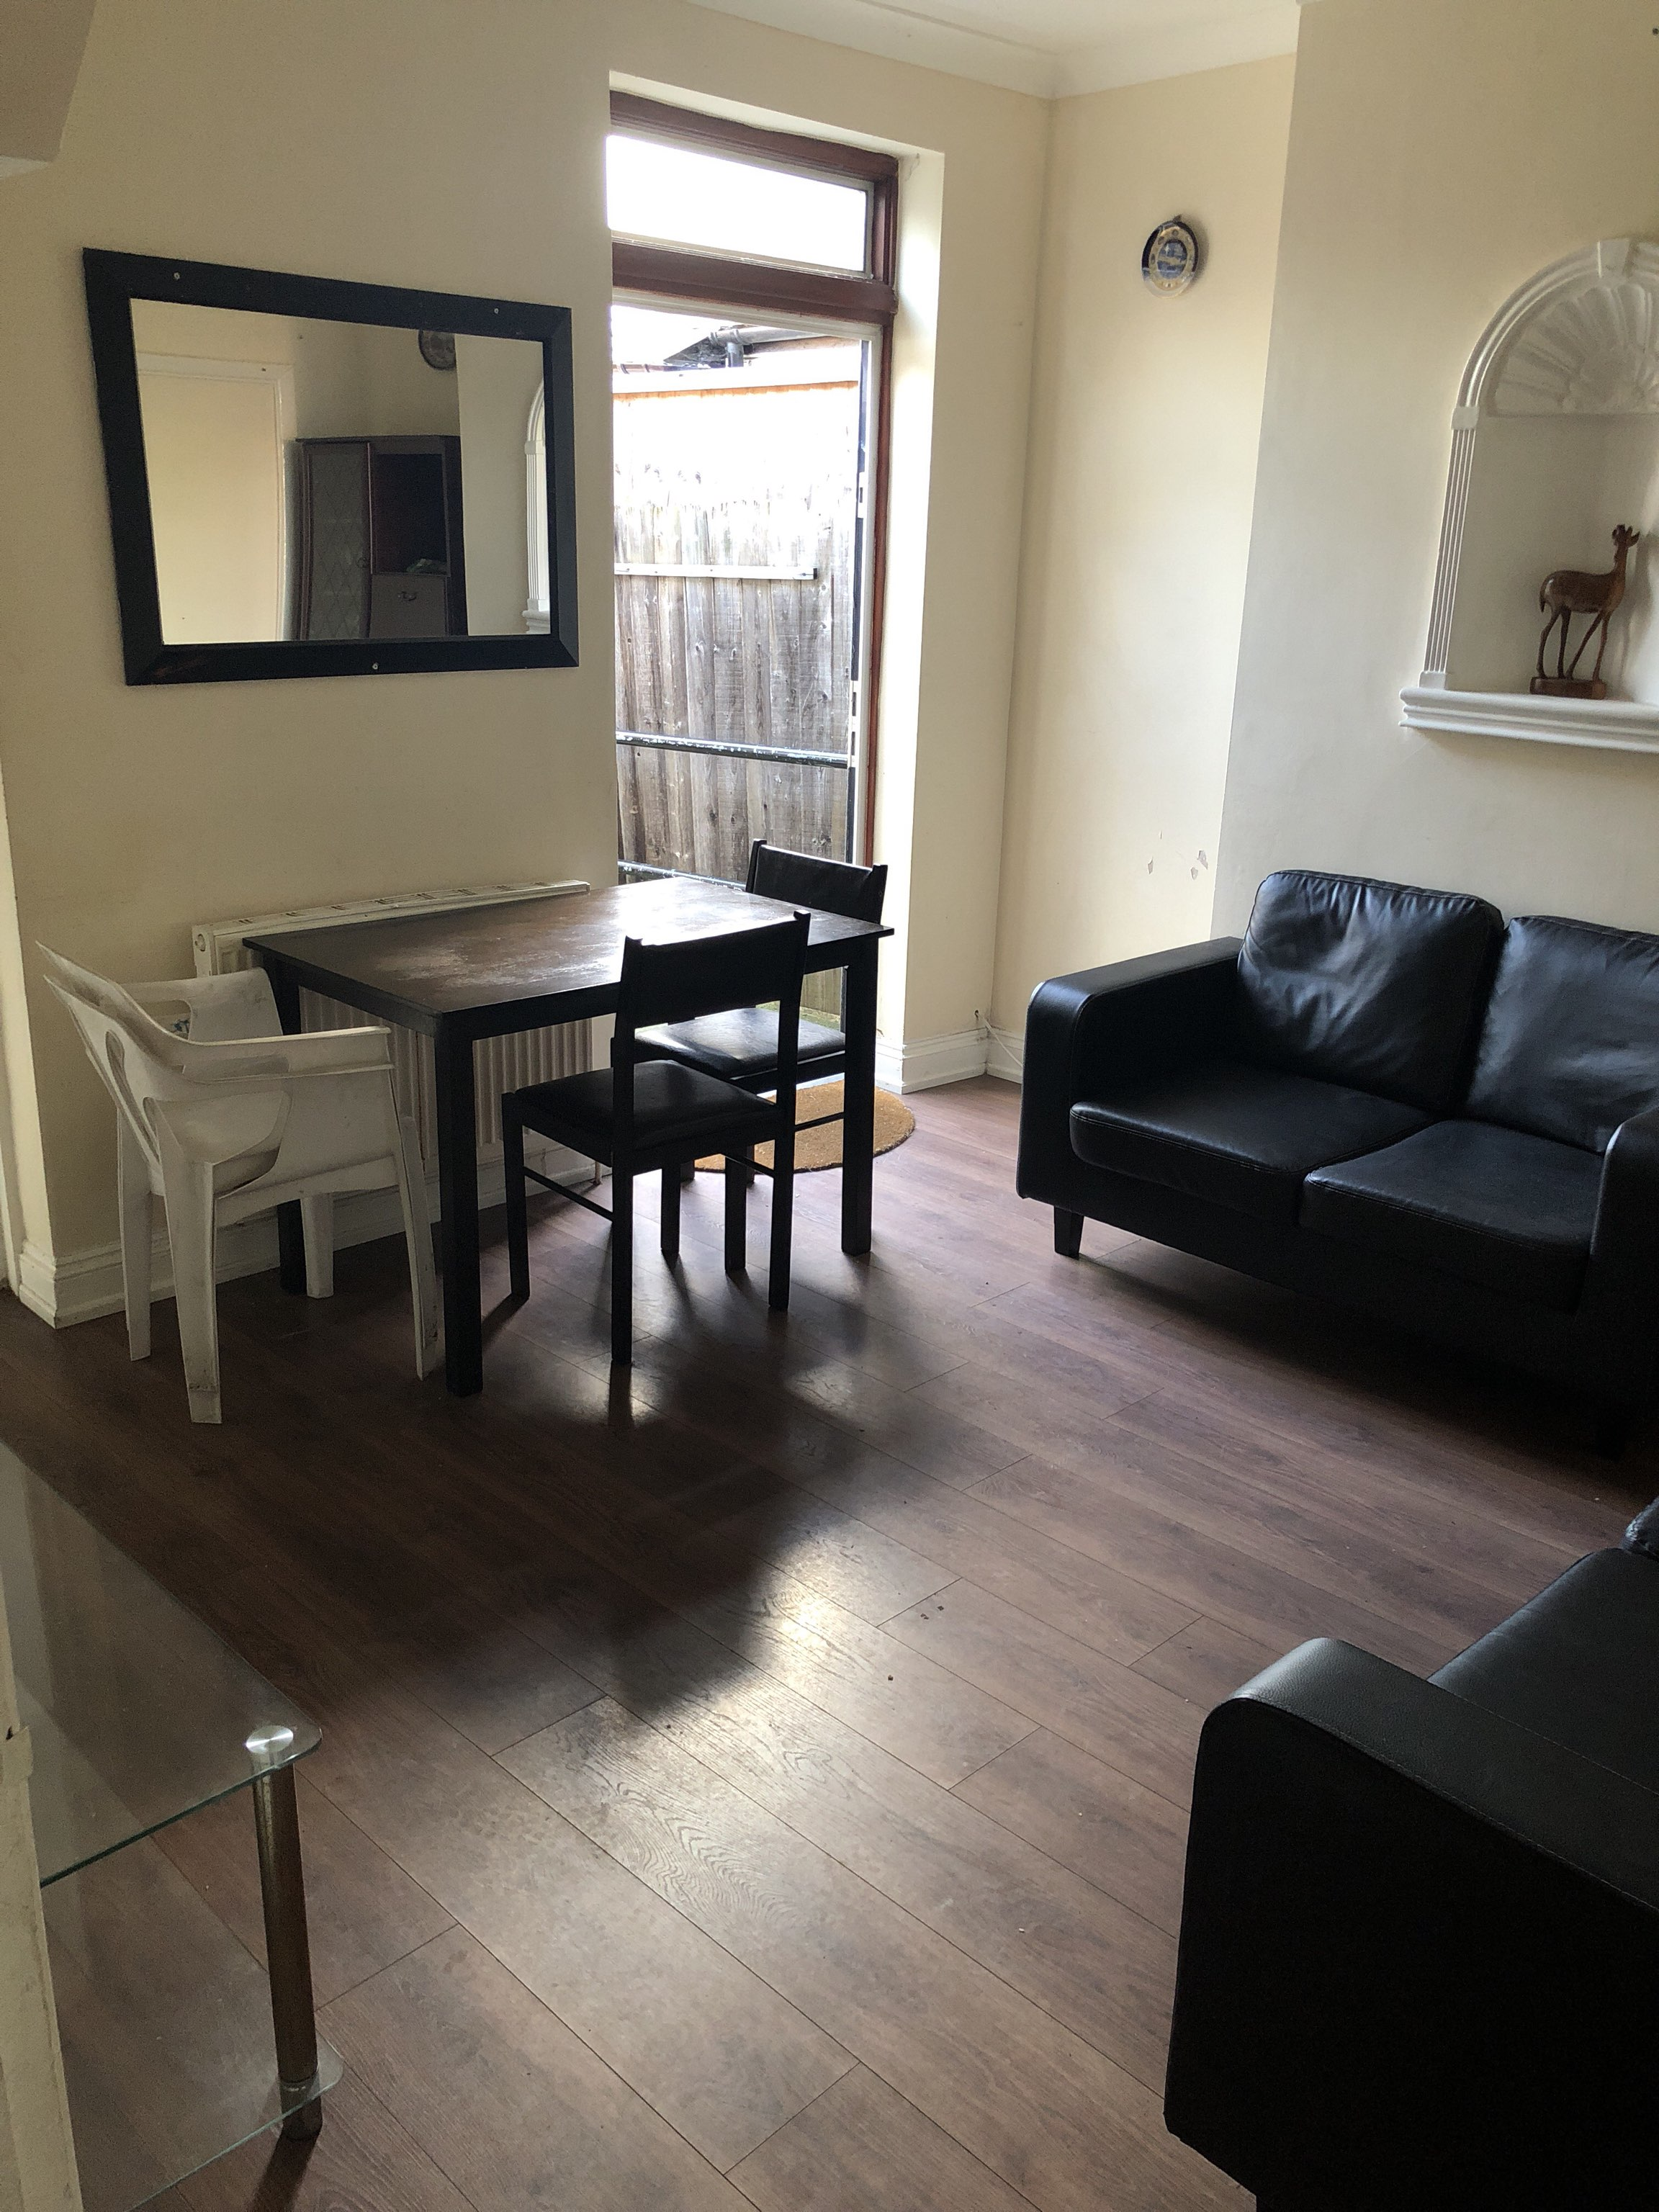 Property in East Ham South, London, E63QN RoomsLocal image